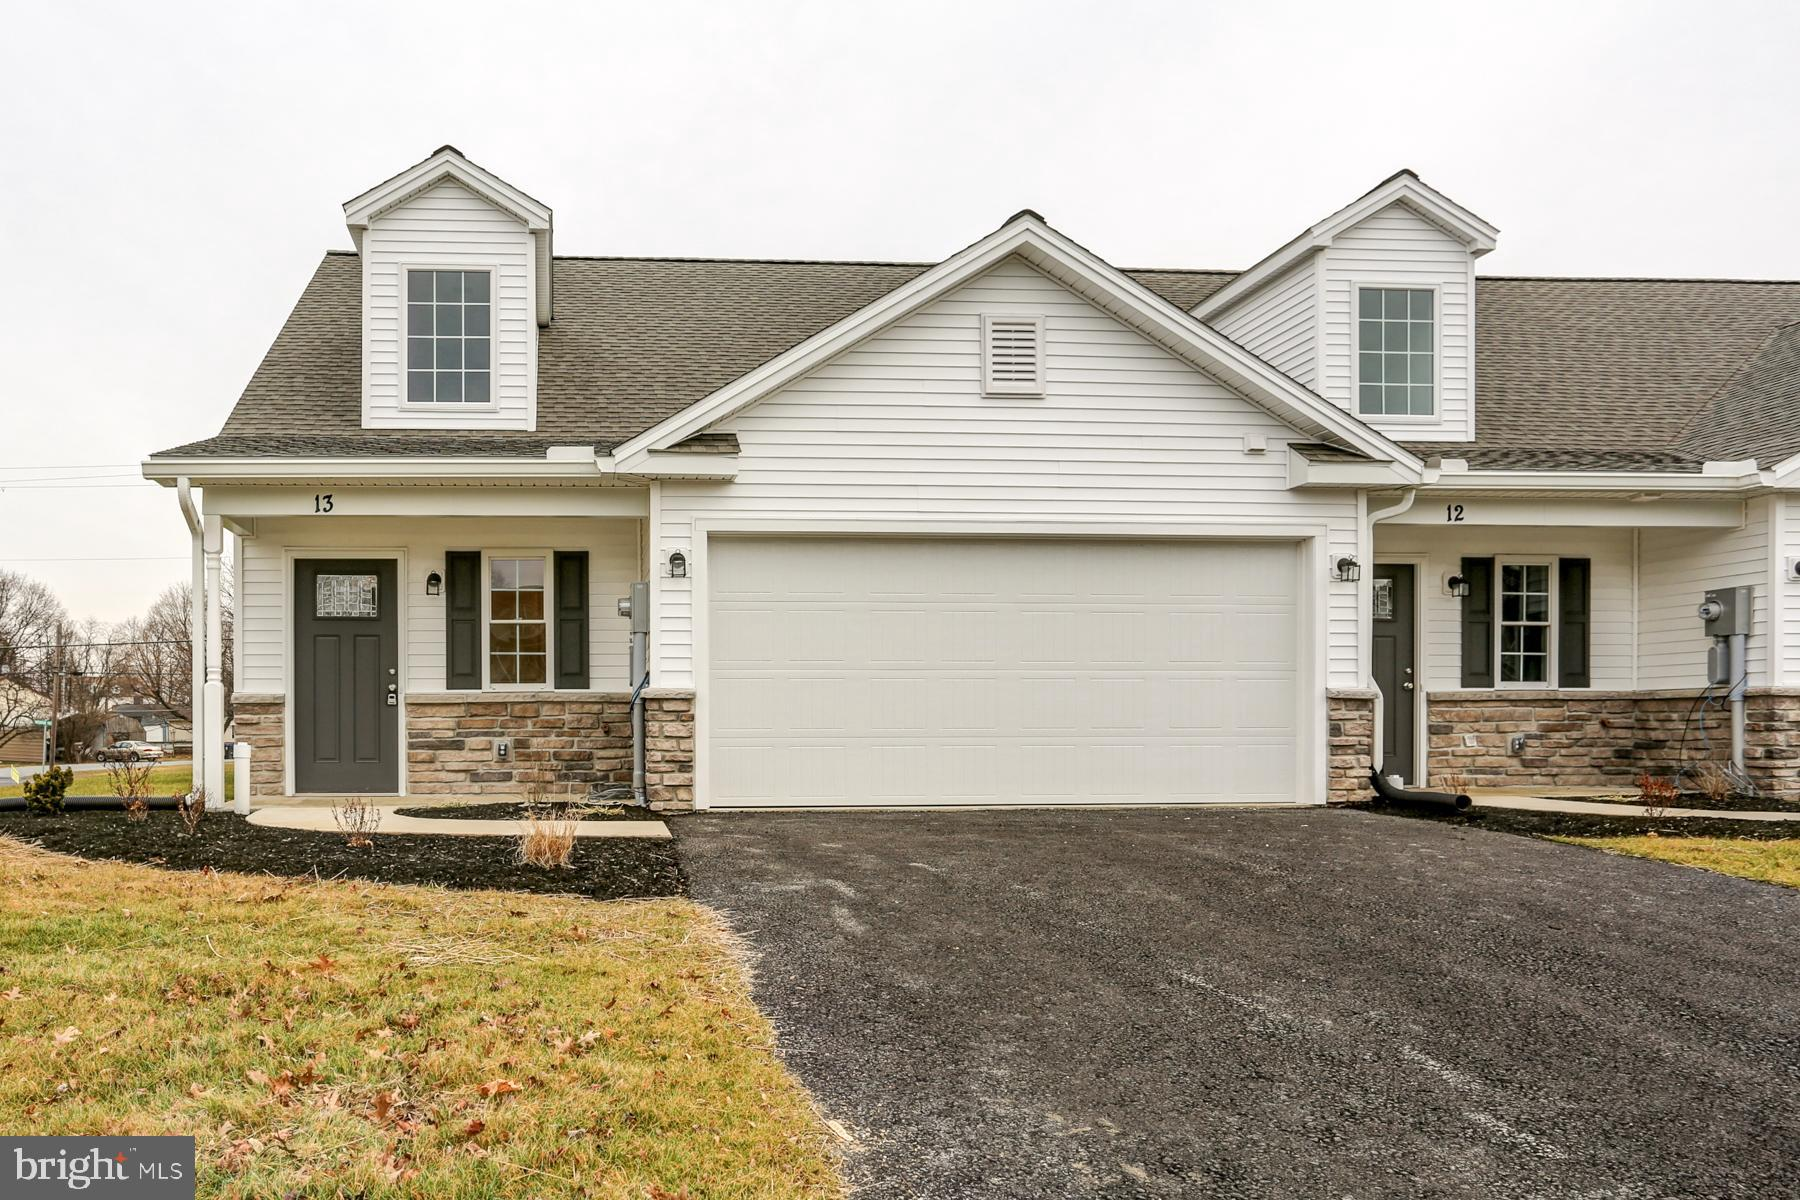 13 GROUP COURT, MOUNT HOLLY SPRINGS, PA 17065